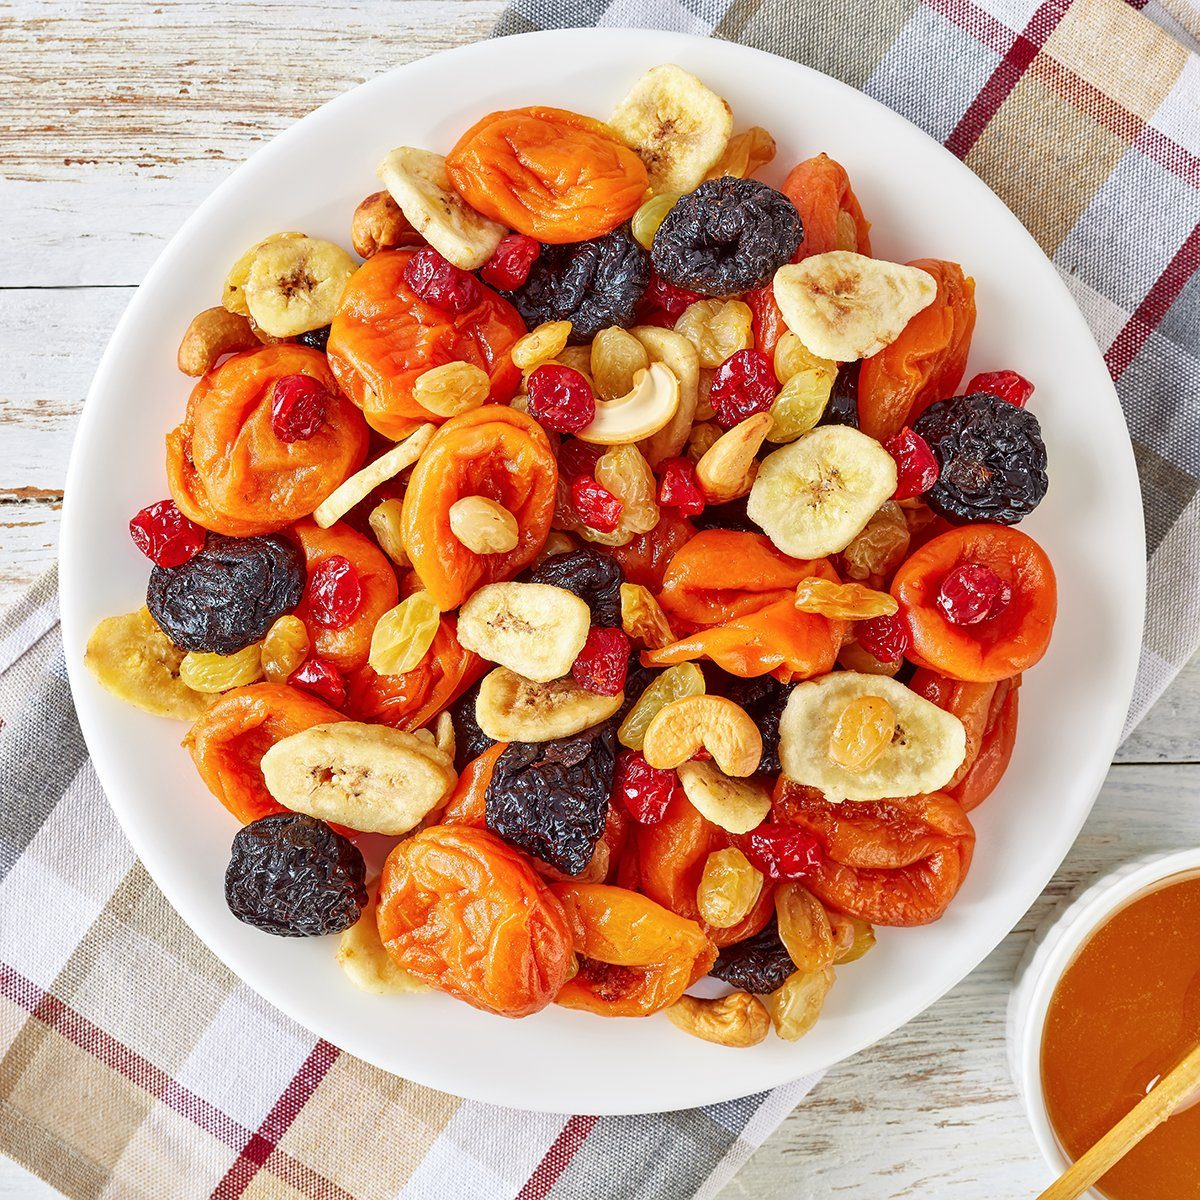 dried fruit mix on a plate